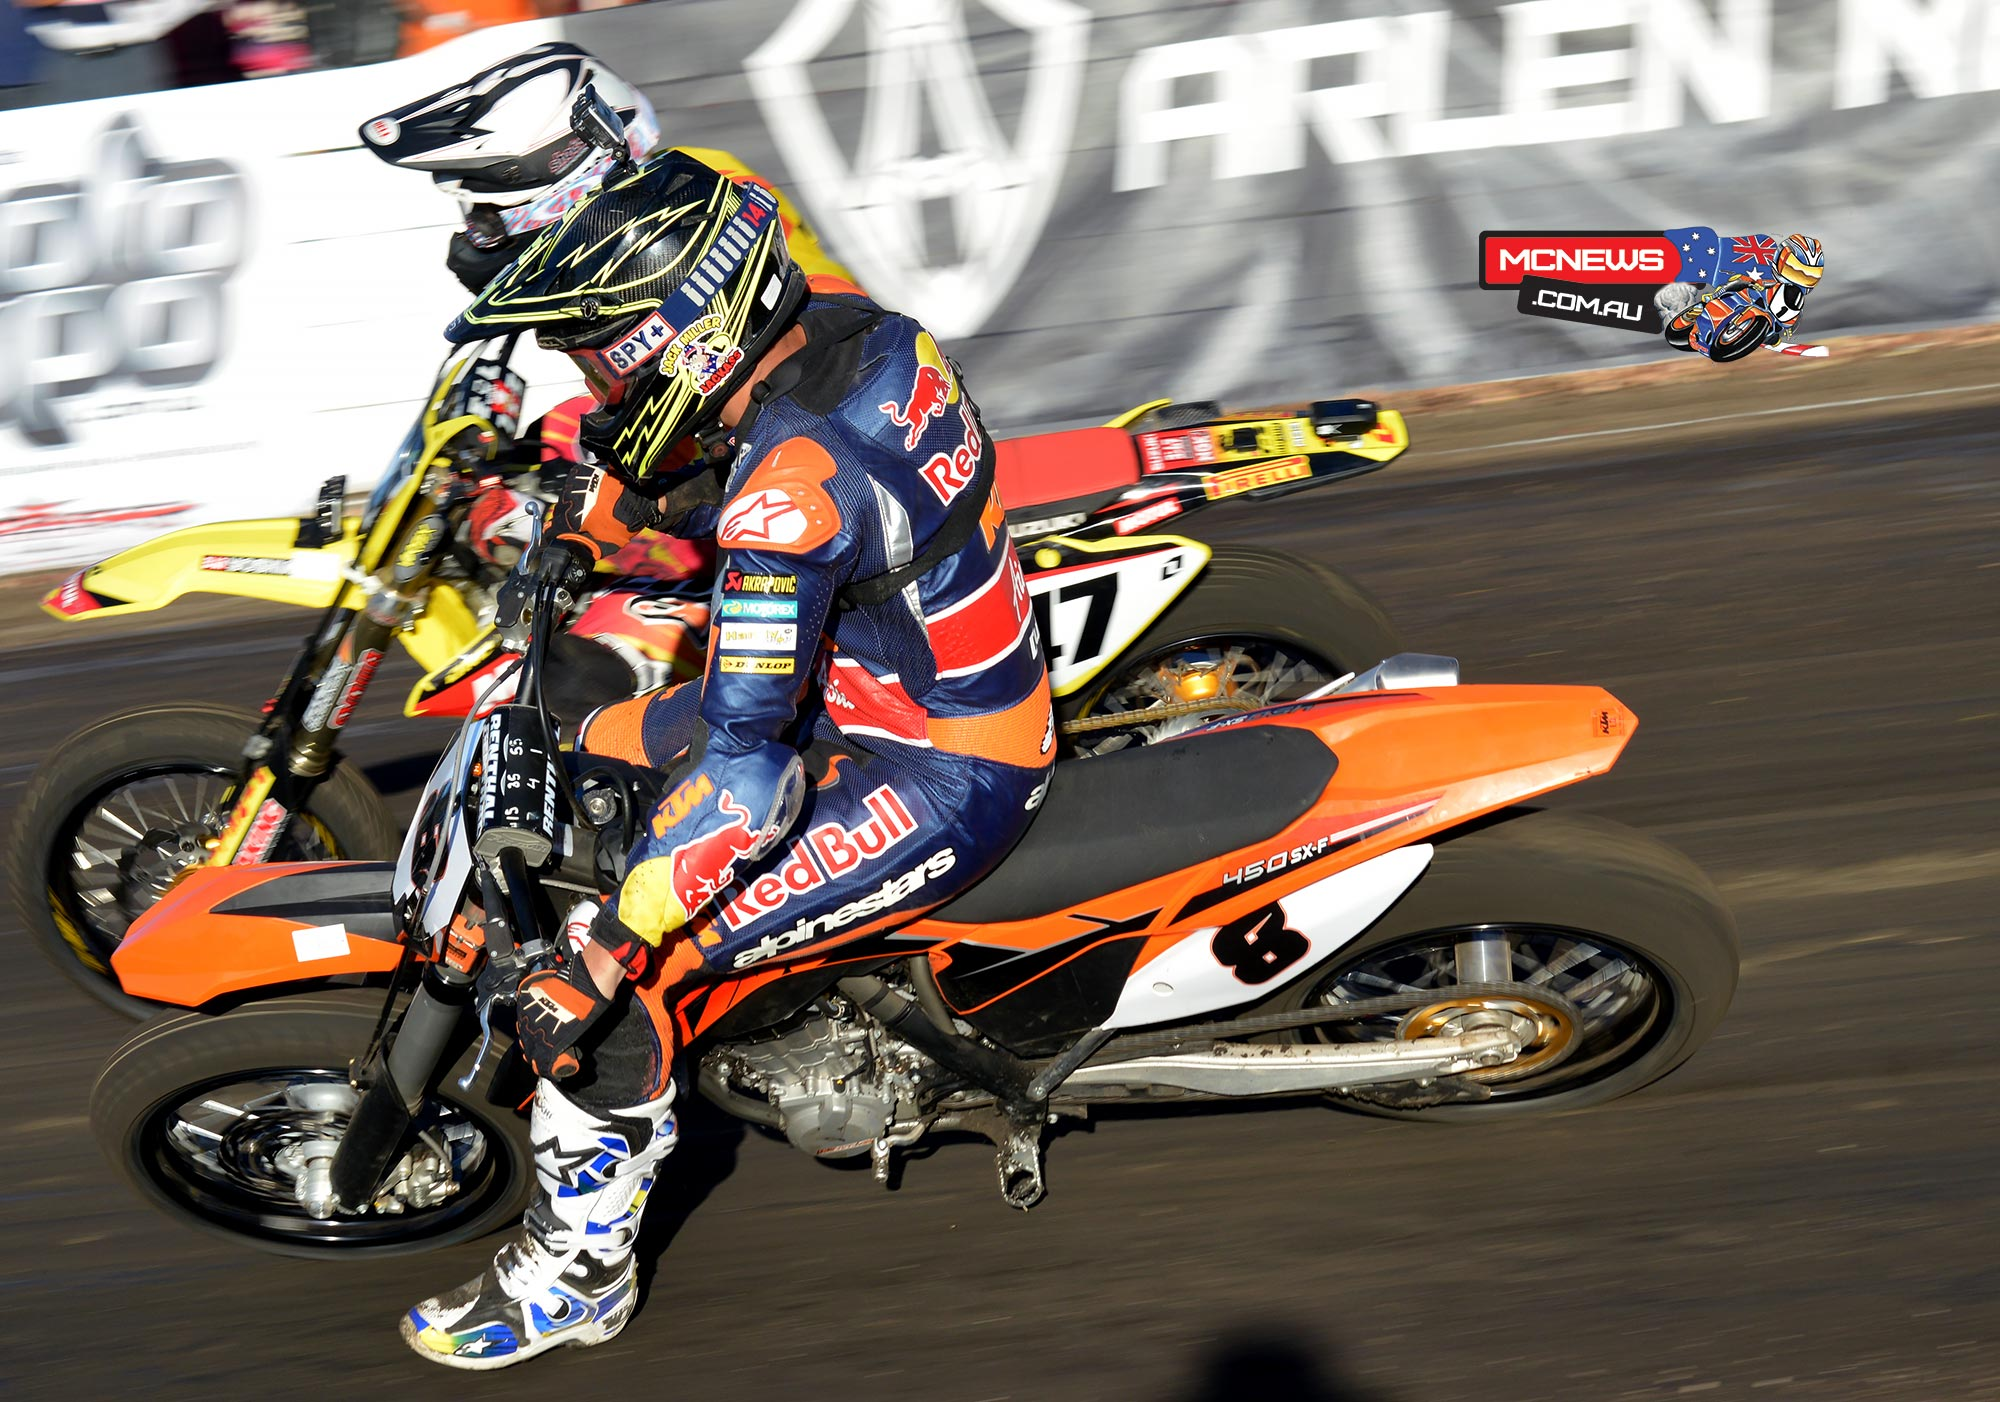 Jack Miller at the 2014 Bayliss Classic tussling with Wayne Maxwell